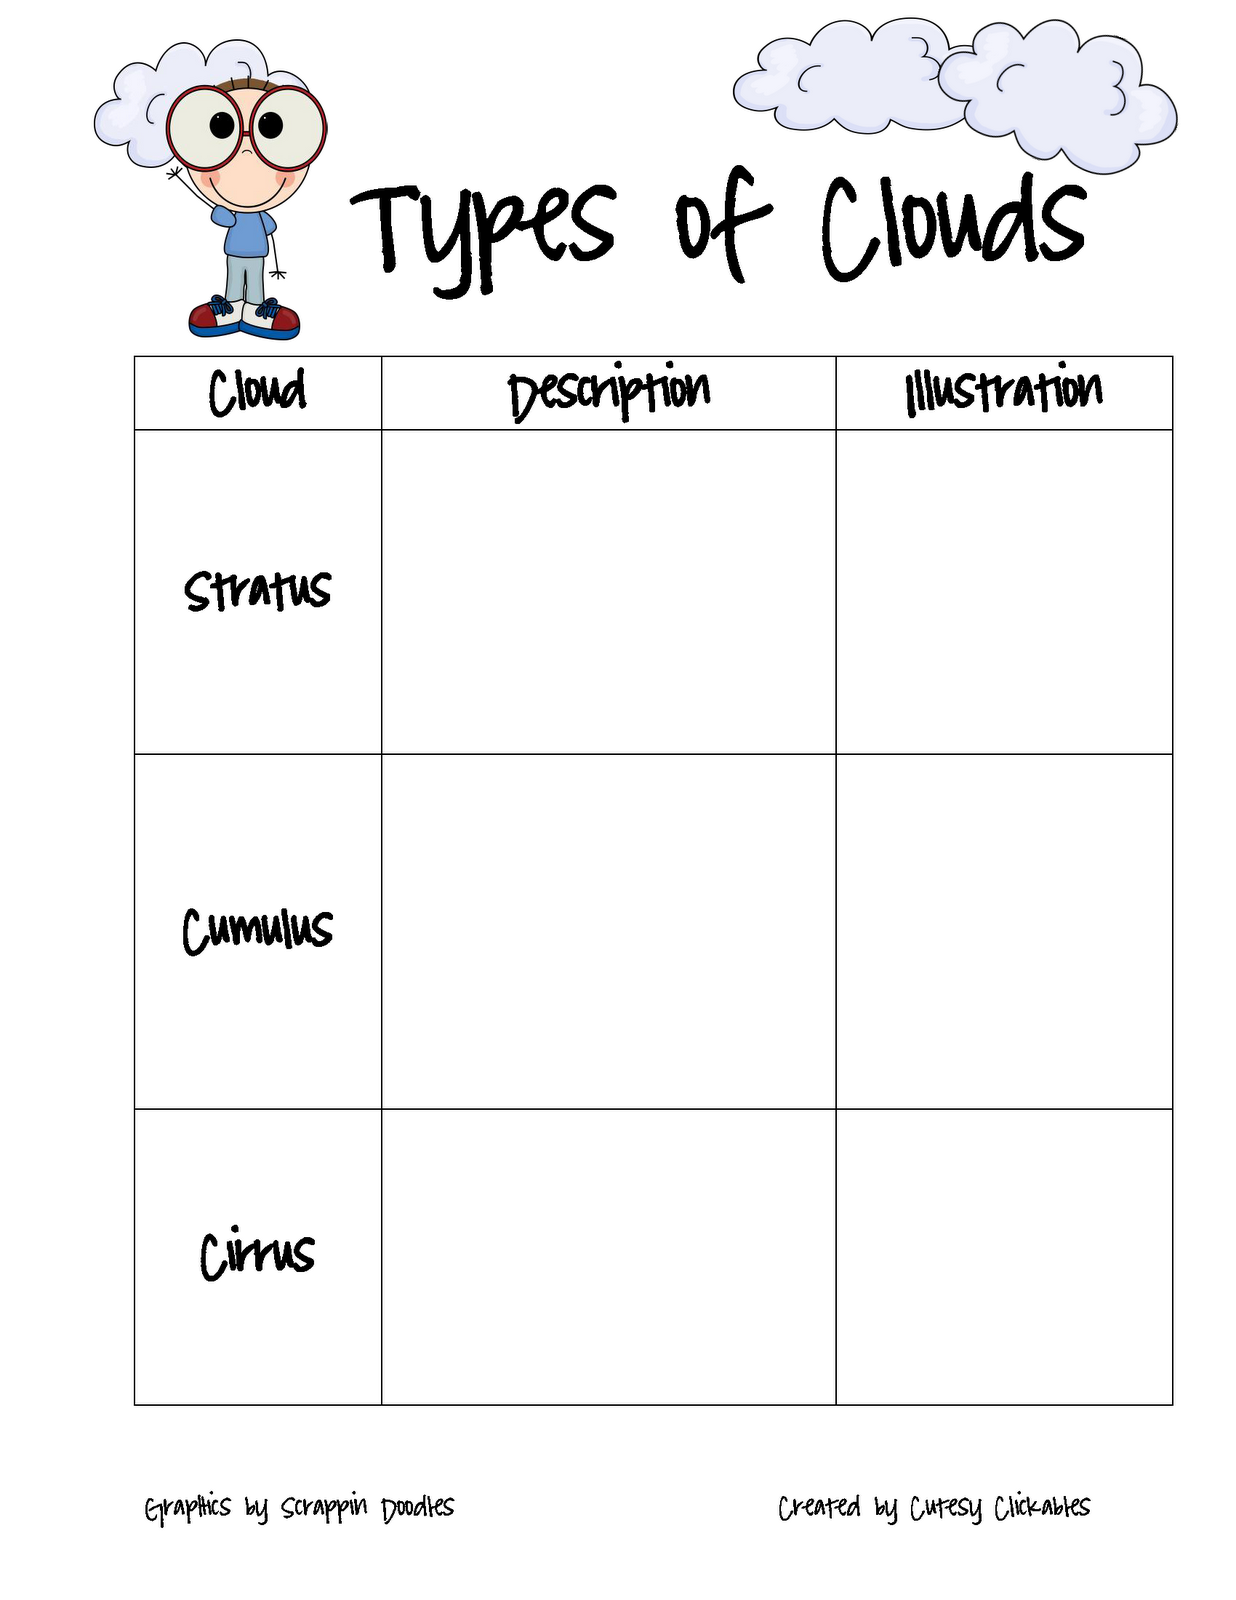 Worksheets Types Of Clouds Worksheet types of clouds freebie teacher ideas and resources pinterest freebie